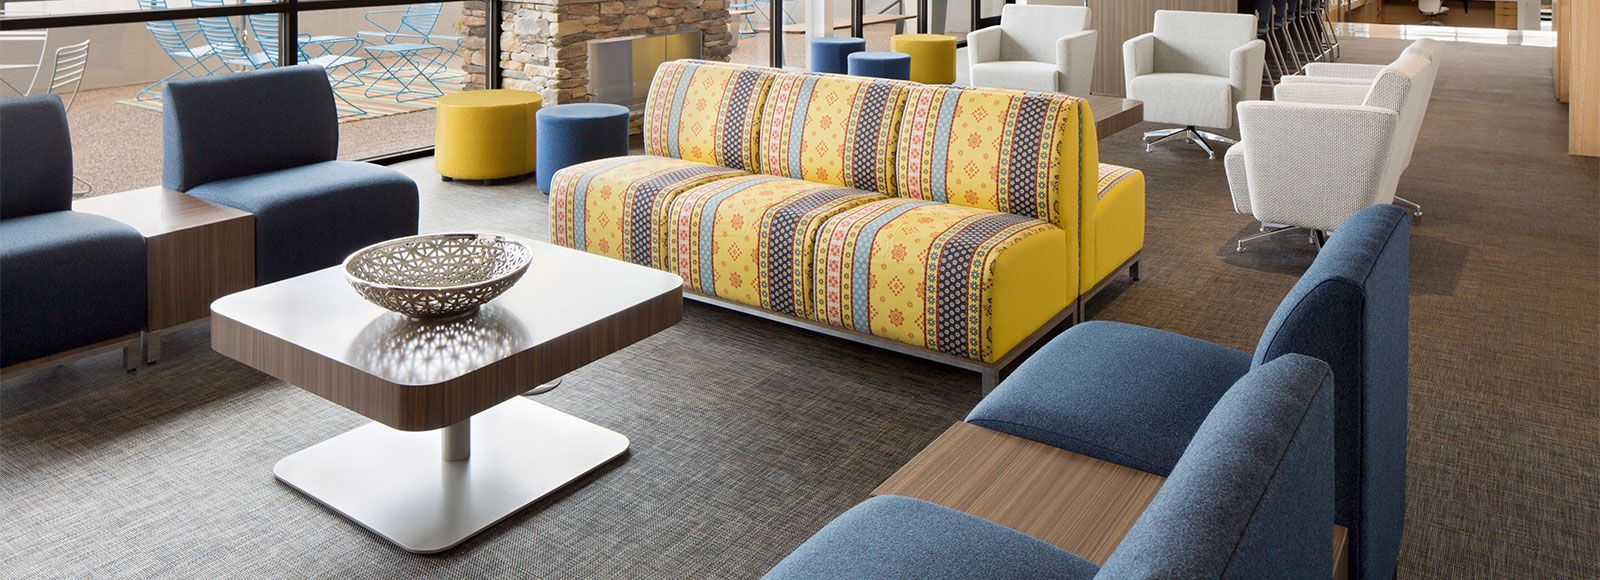 National office furniture headquarters chose innovative custom national office furniture headquarters chose innovative custom chilewich biofelt backed floor tiles in basketweave brushed dailygadgetfo Images